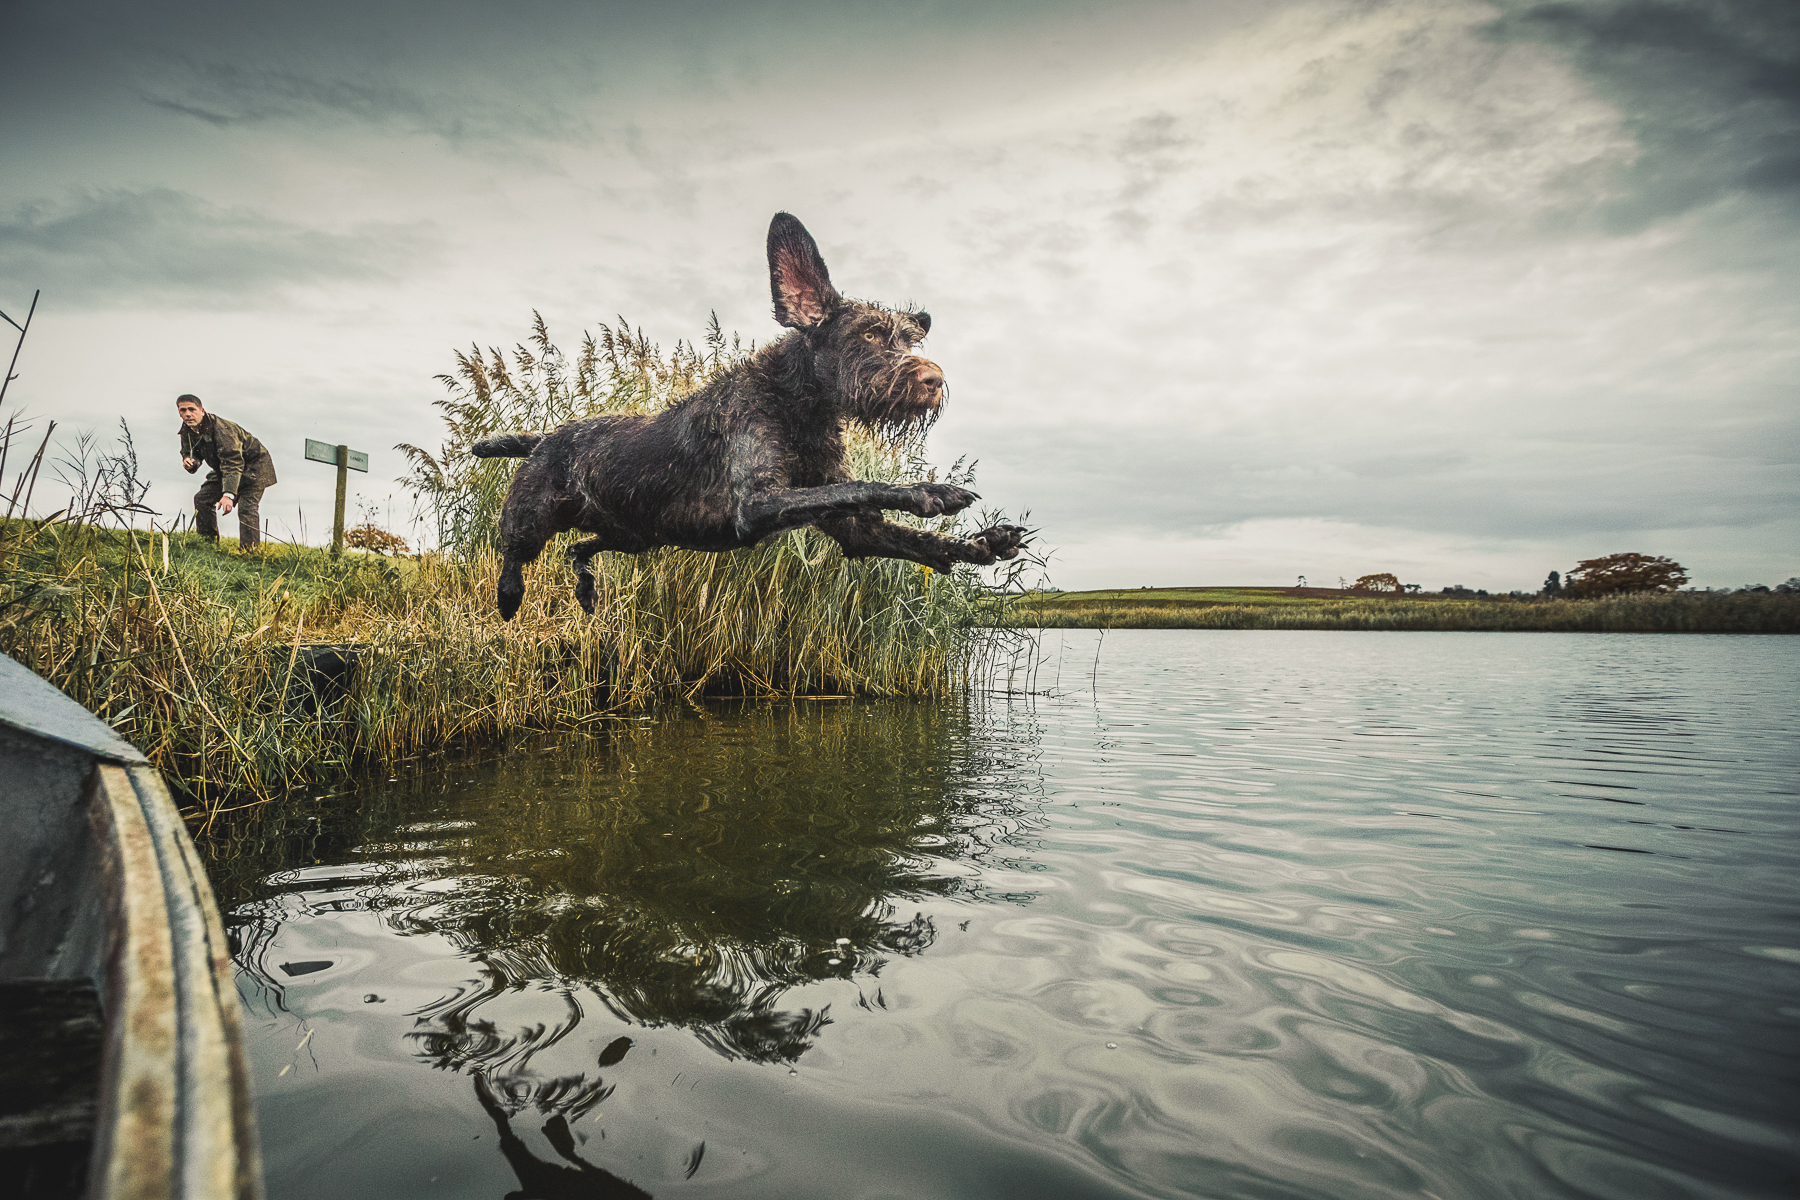 Dog leaping into River after fallen Game